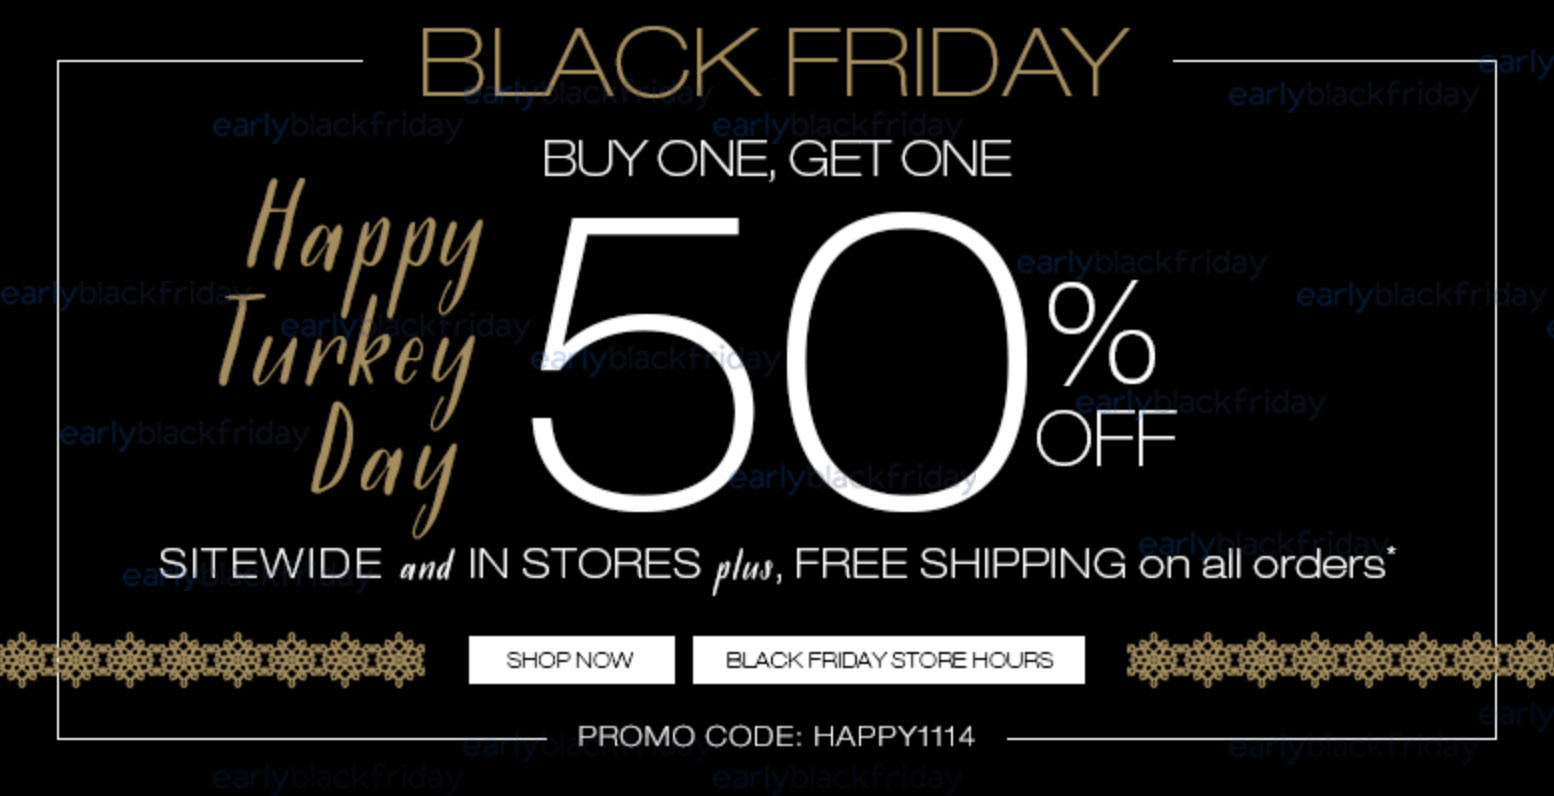 Maurices Black Friday 2014